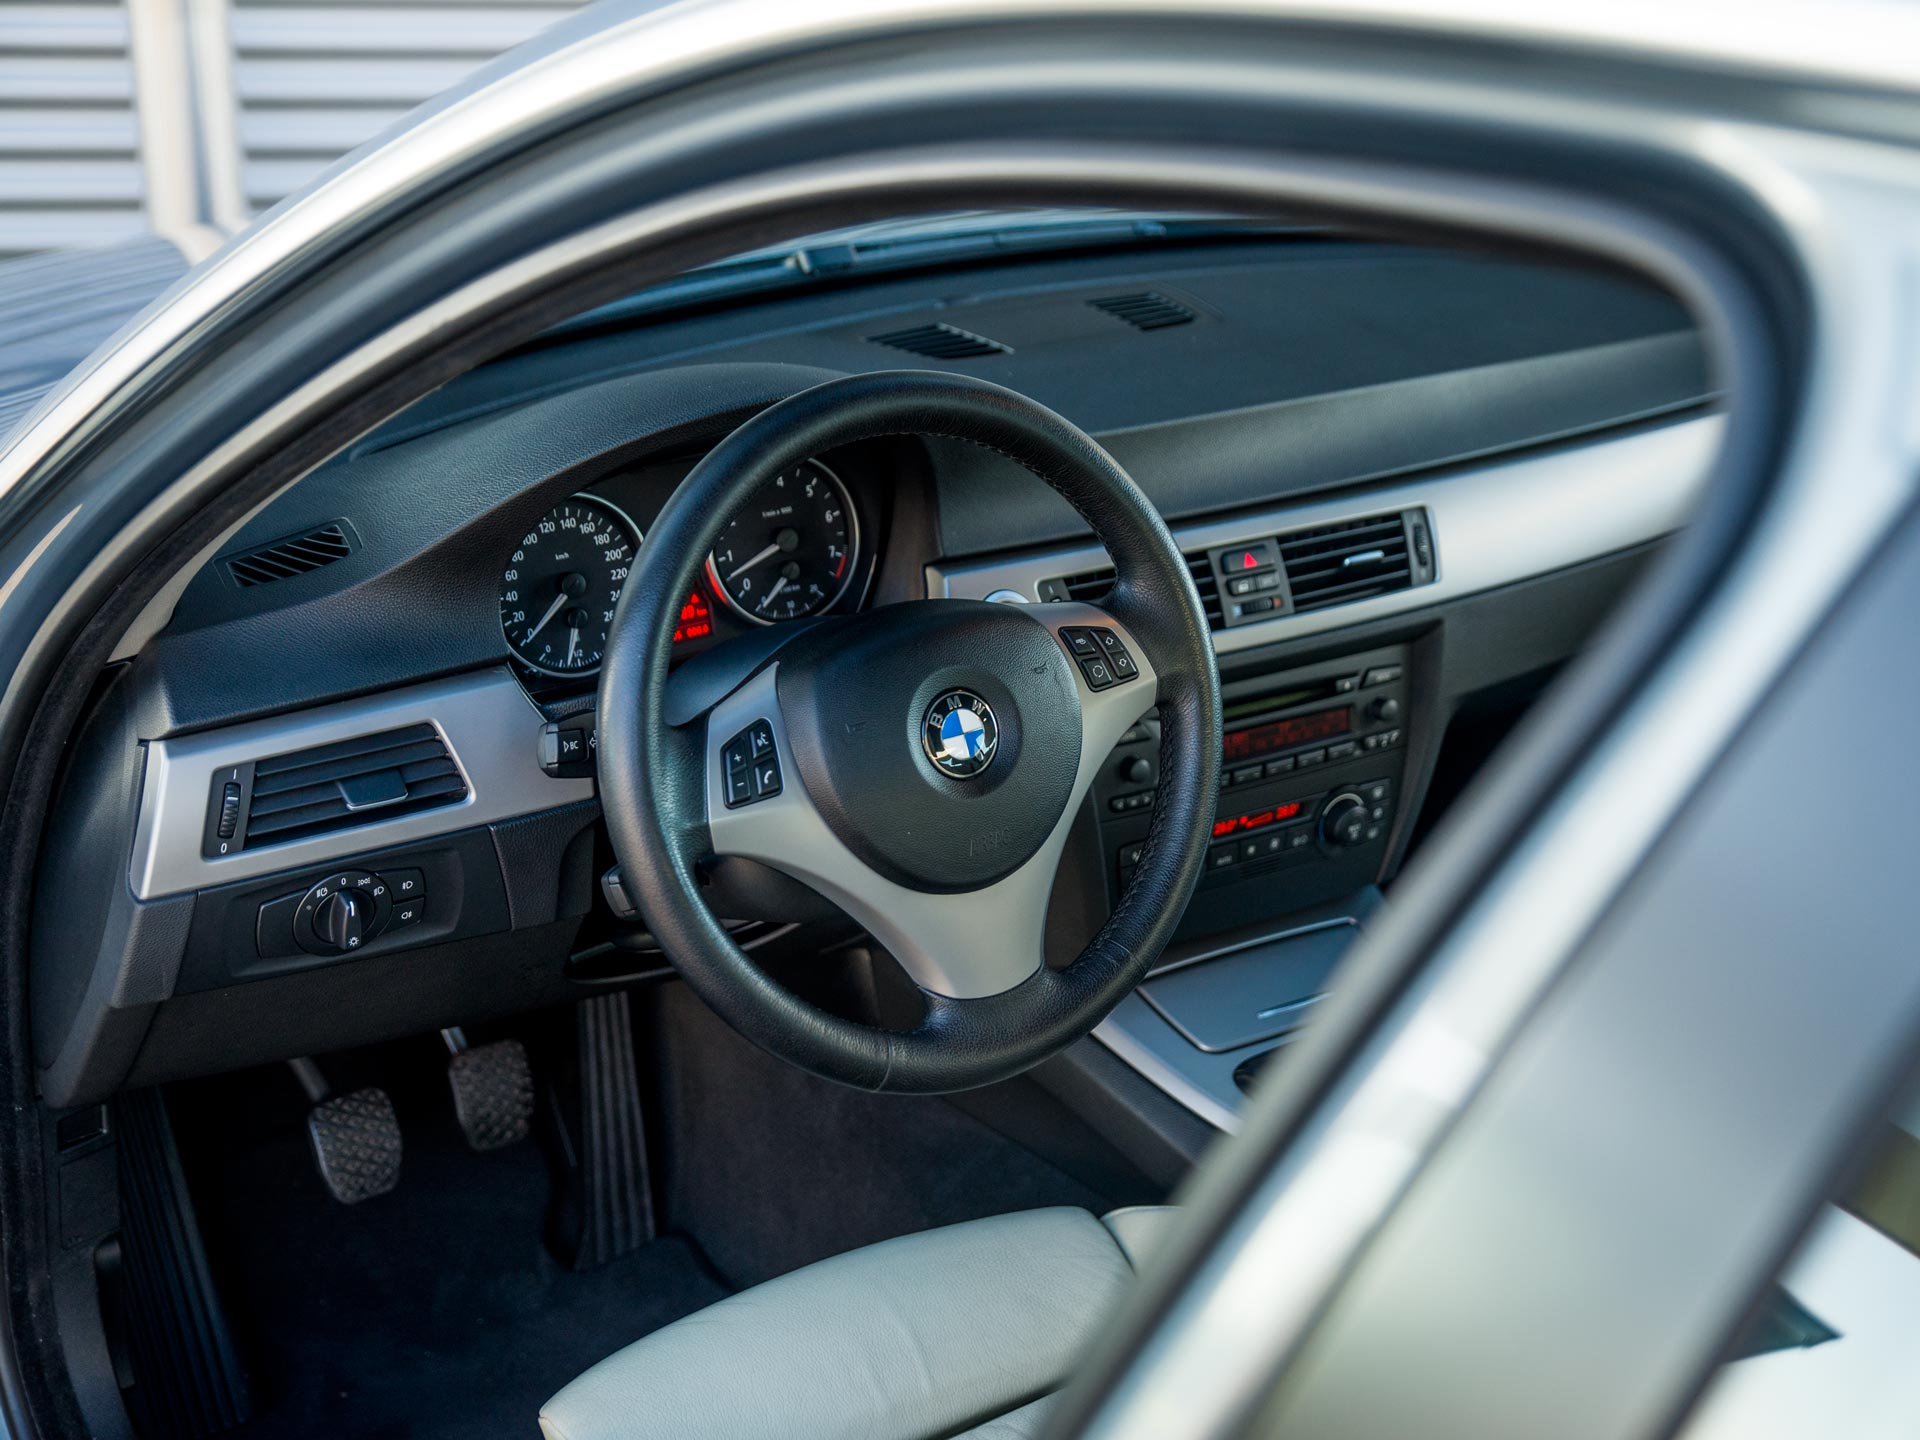 Tweedehands BMW 3 Serie occasion